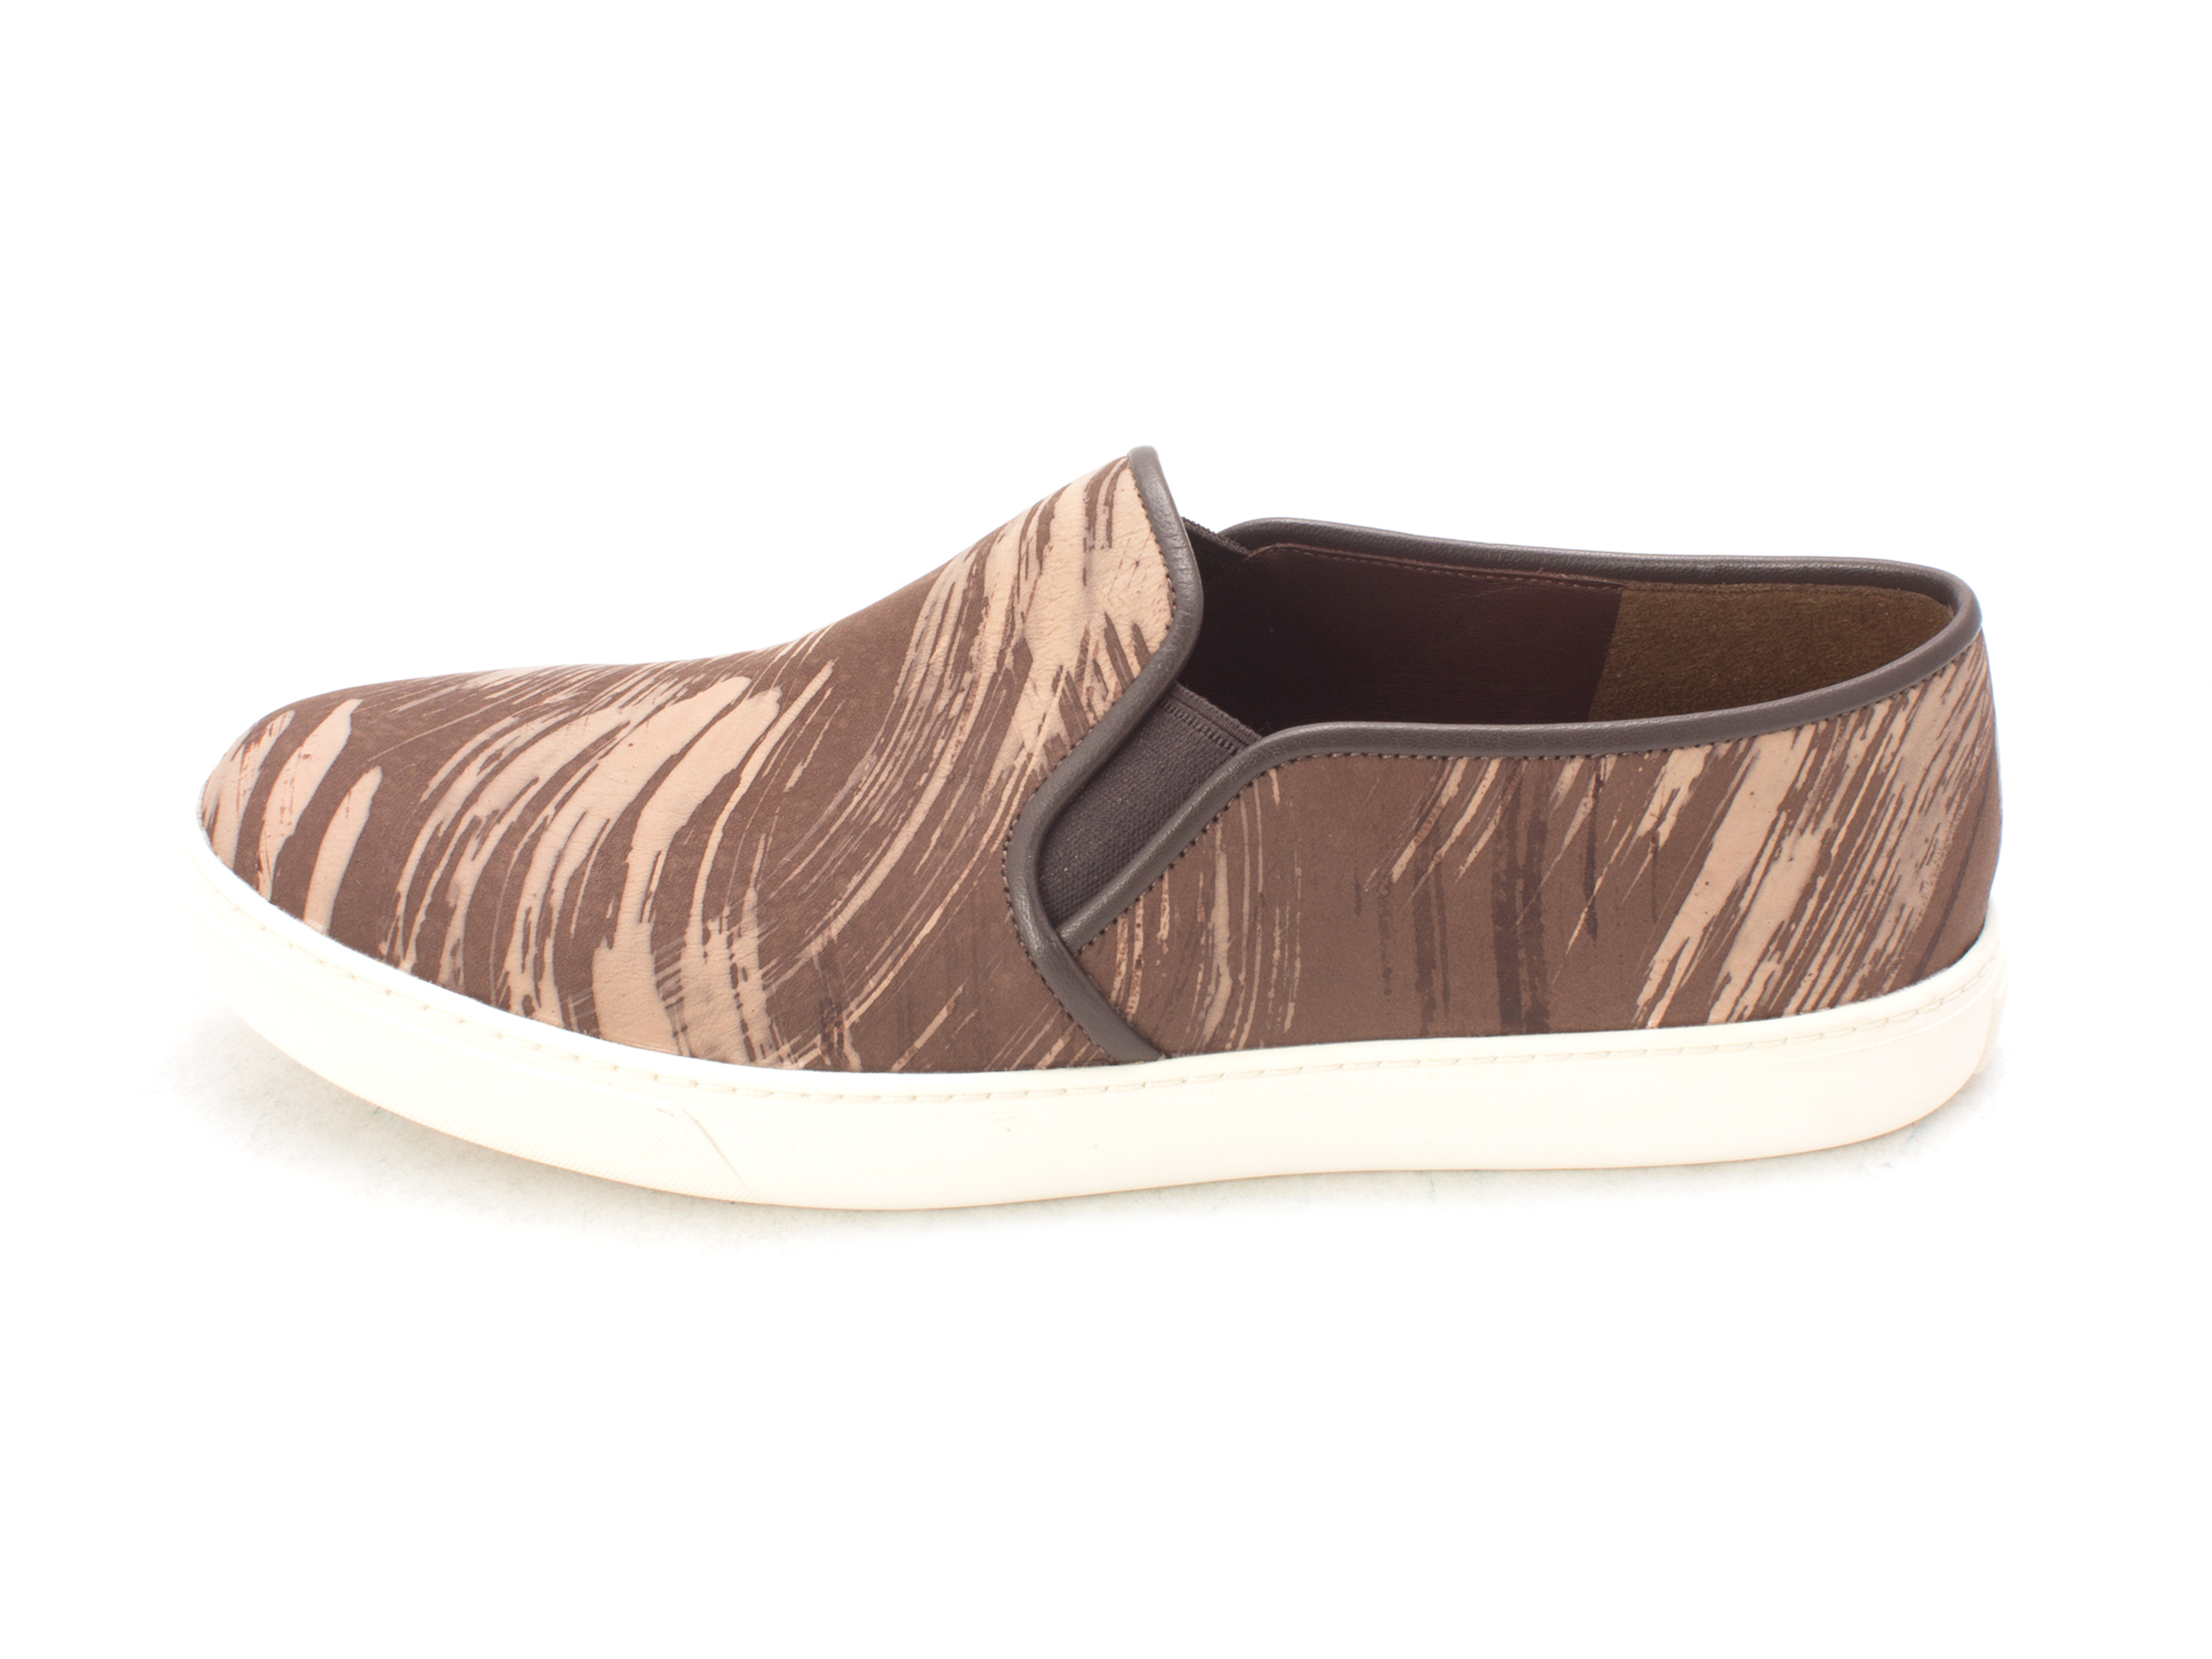 9c6746ab5b2f Cole Haan Womens Shantalasam Low Top Slip On Fashion